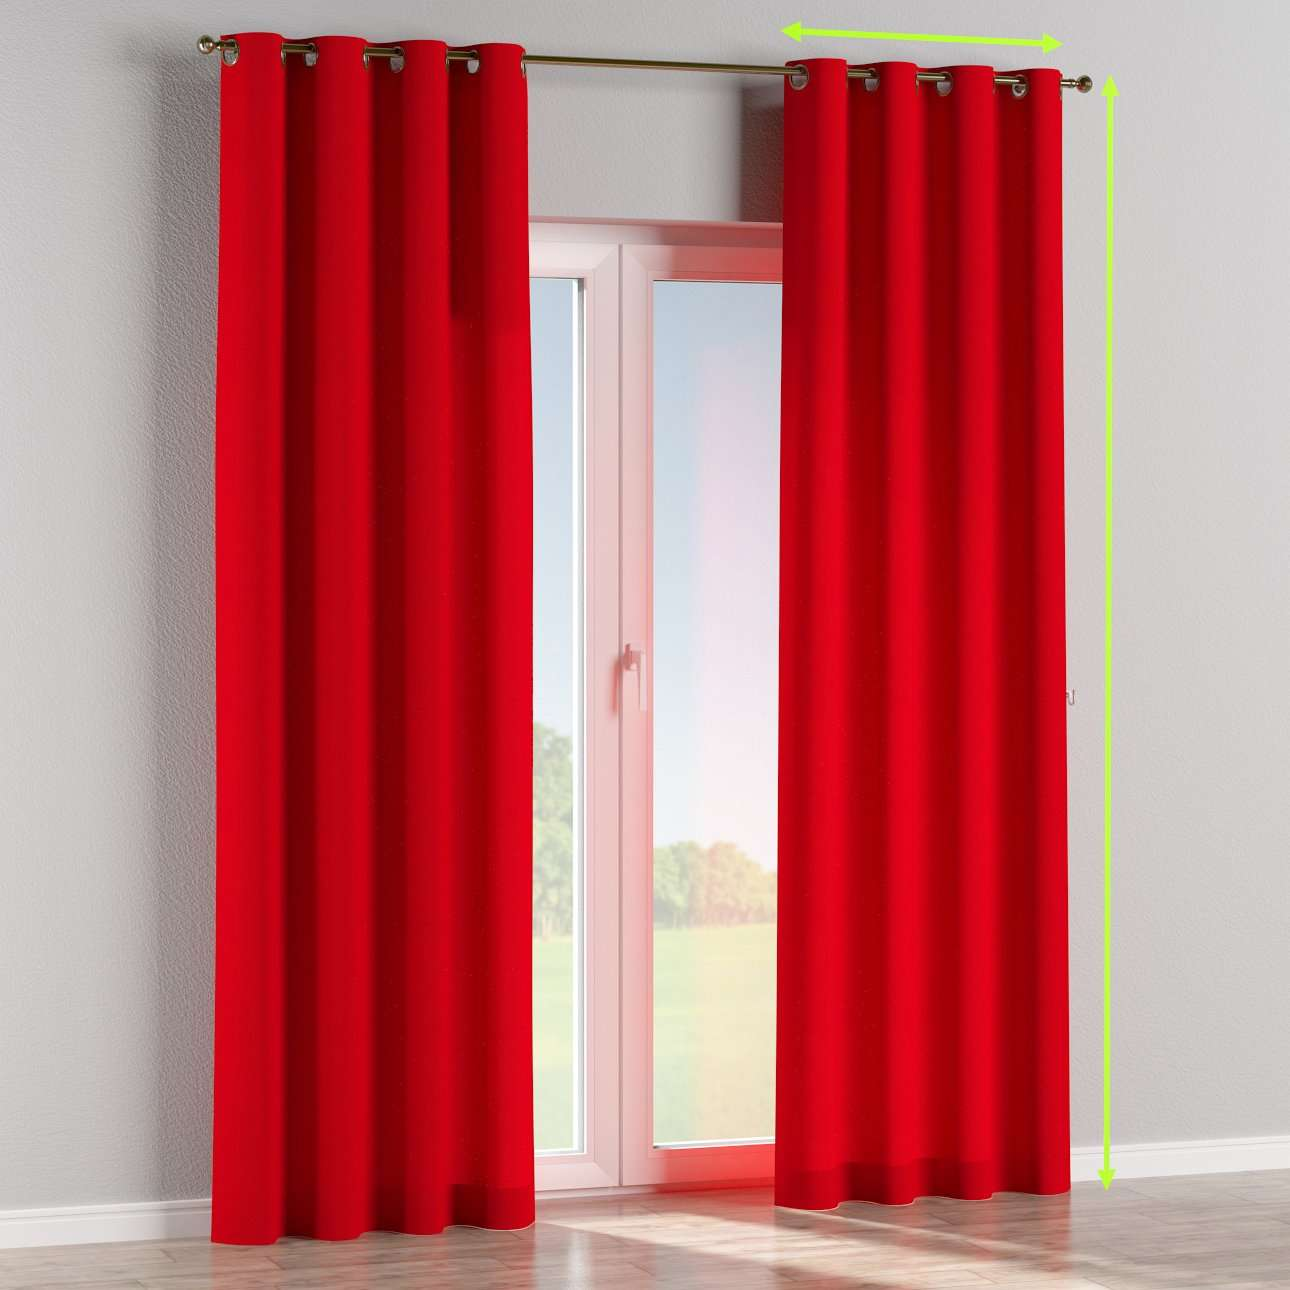 Eyelet lined curtains in collection Chenille, fabric: 702-24